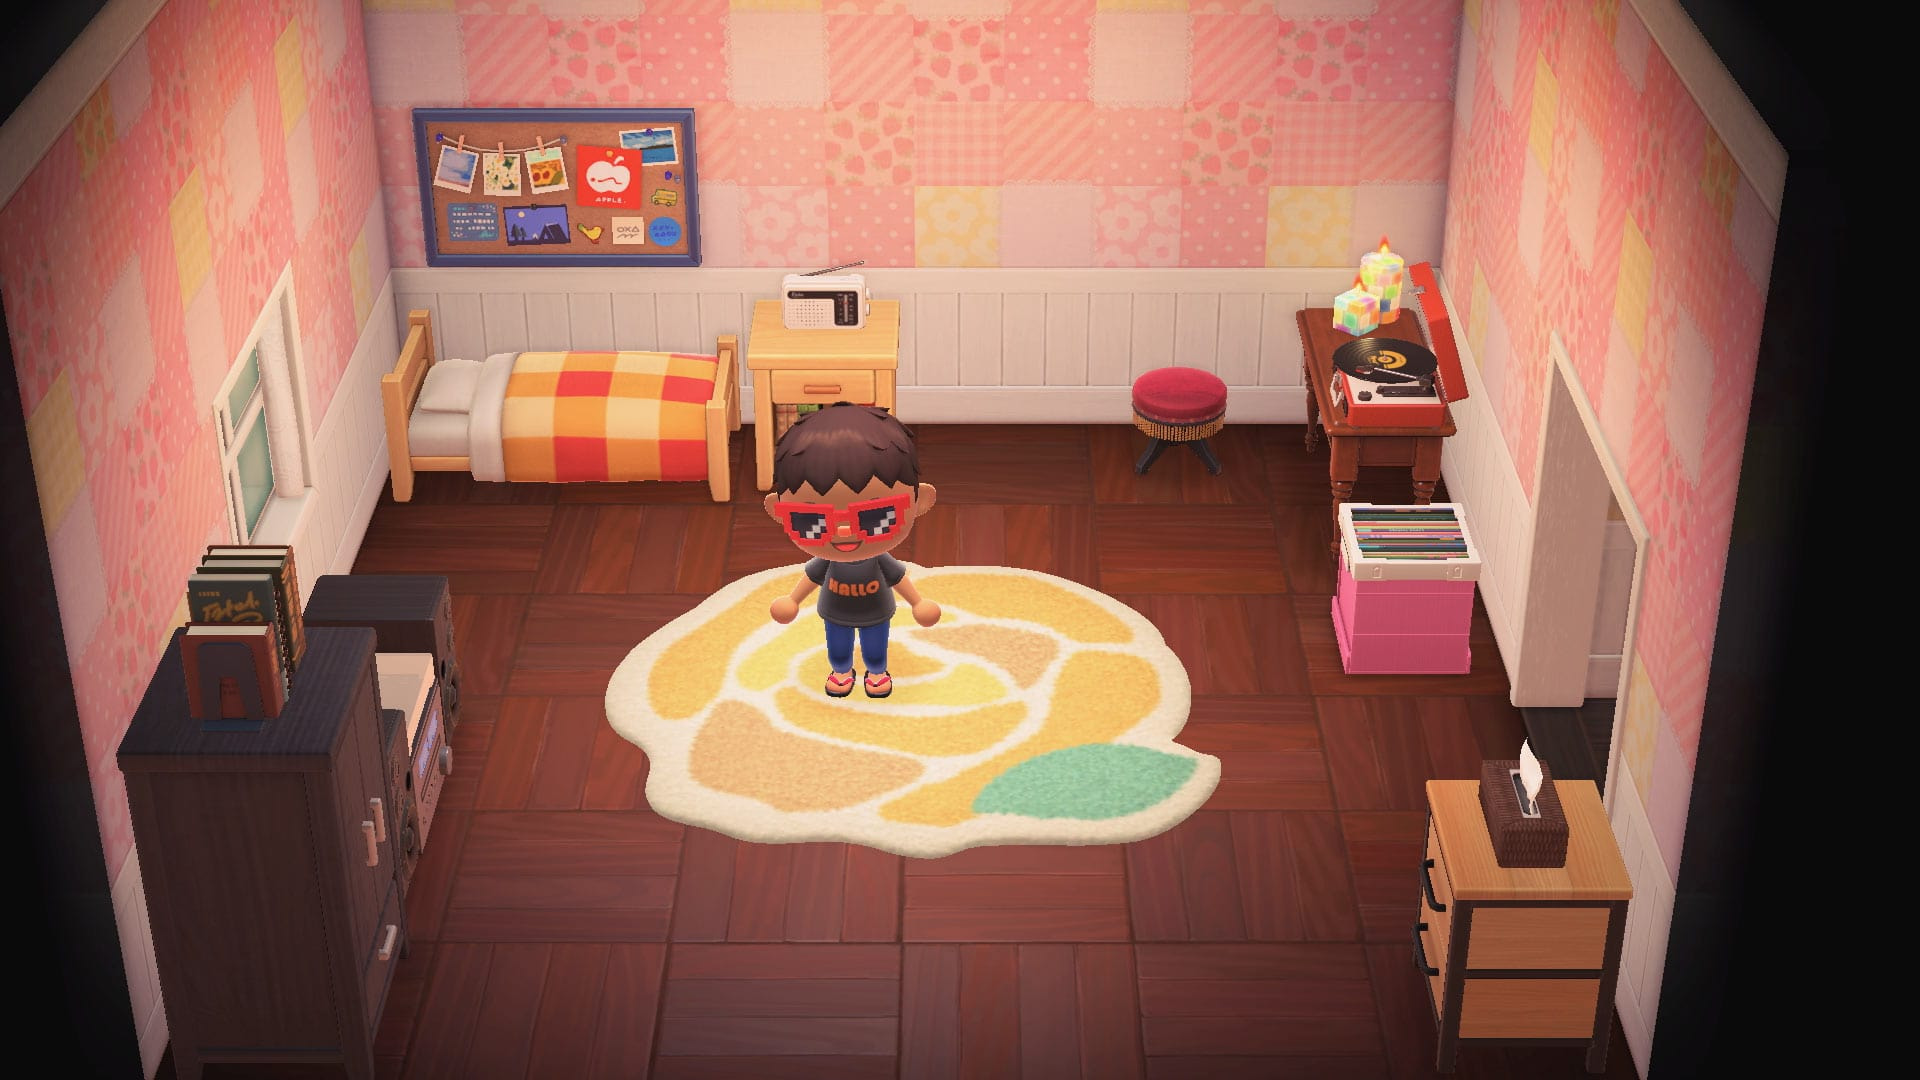 Living Room Ideas Animal Crossing New Horizons - jihanshanum on Animal Crossing Room Ideas New Horizons  id=89750